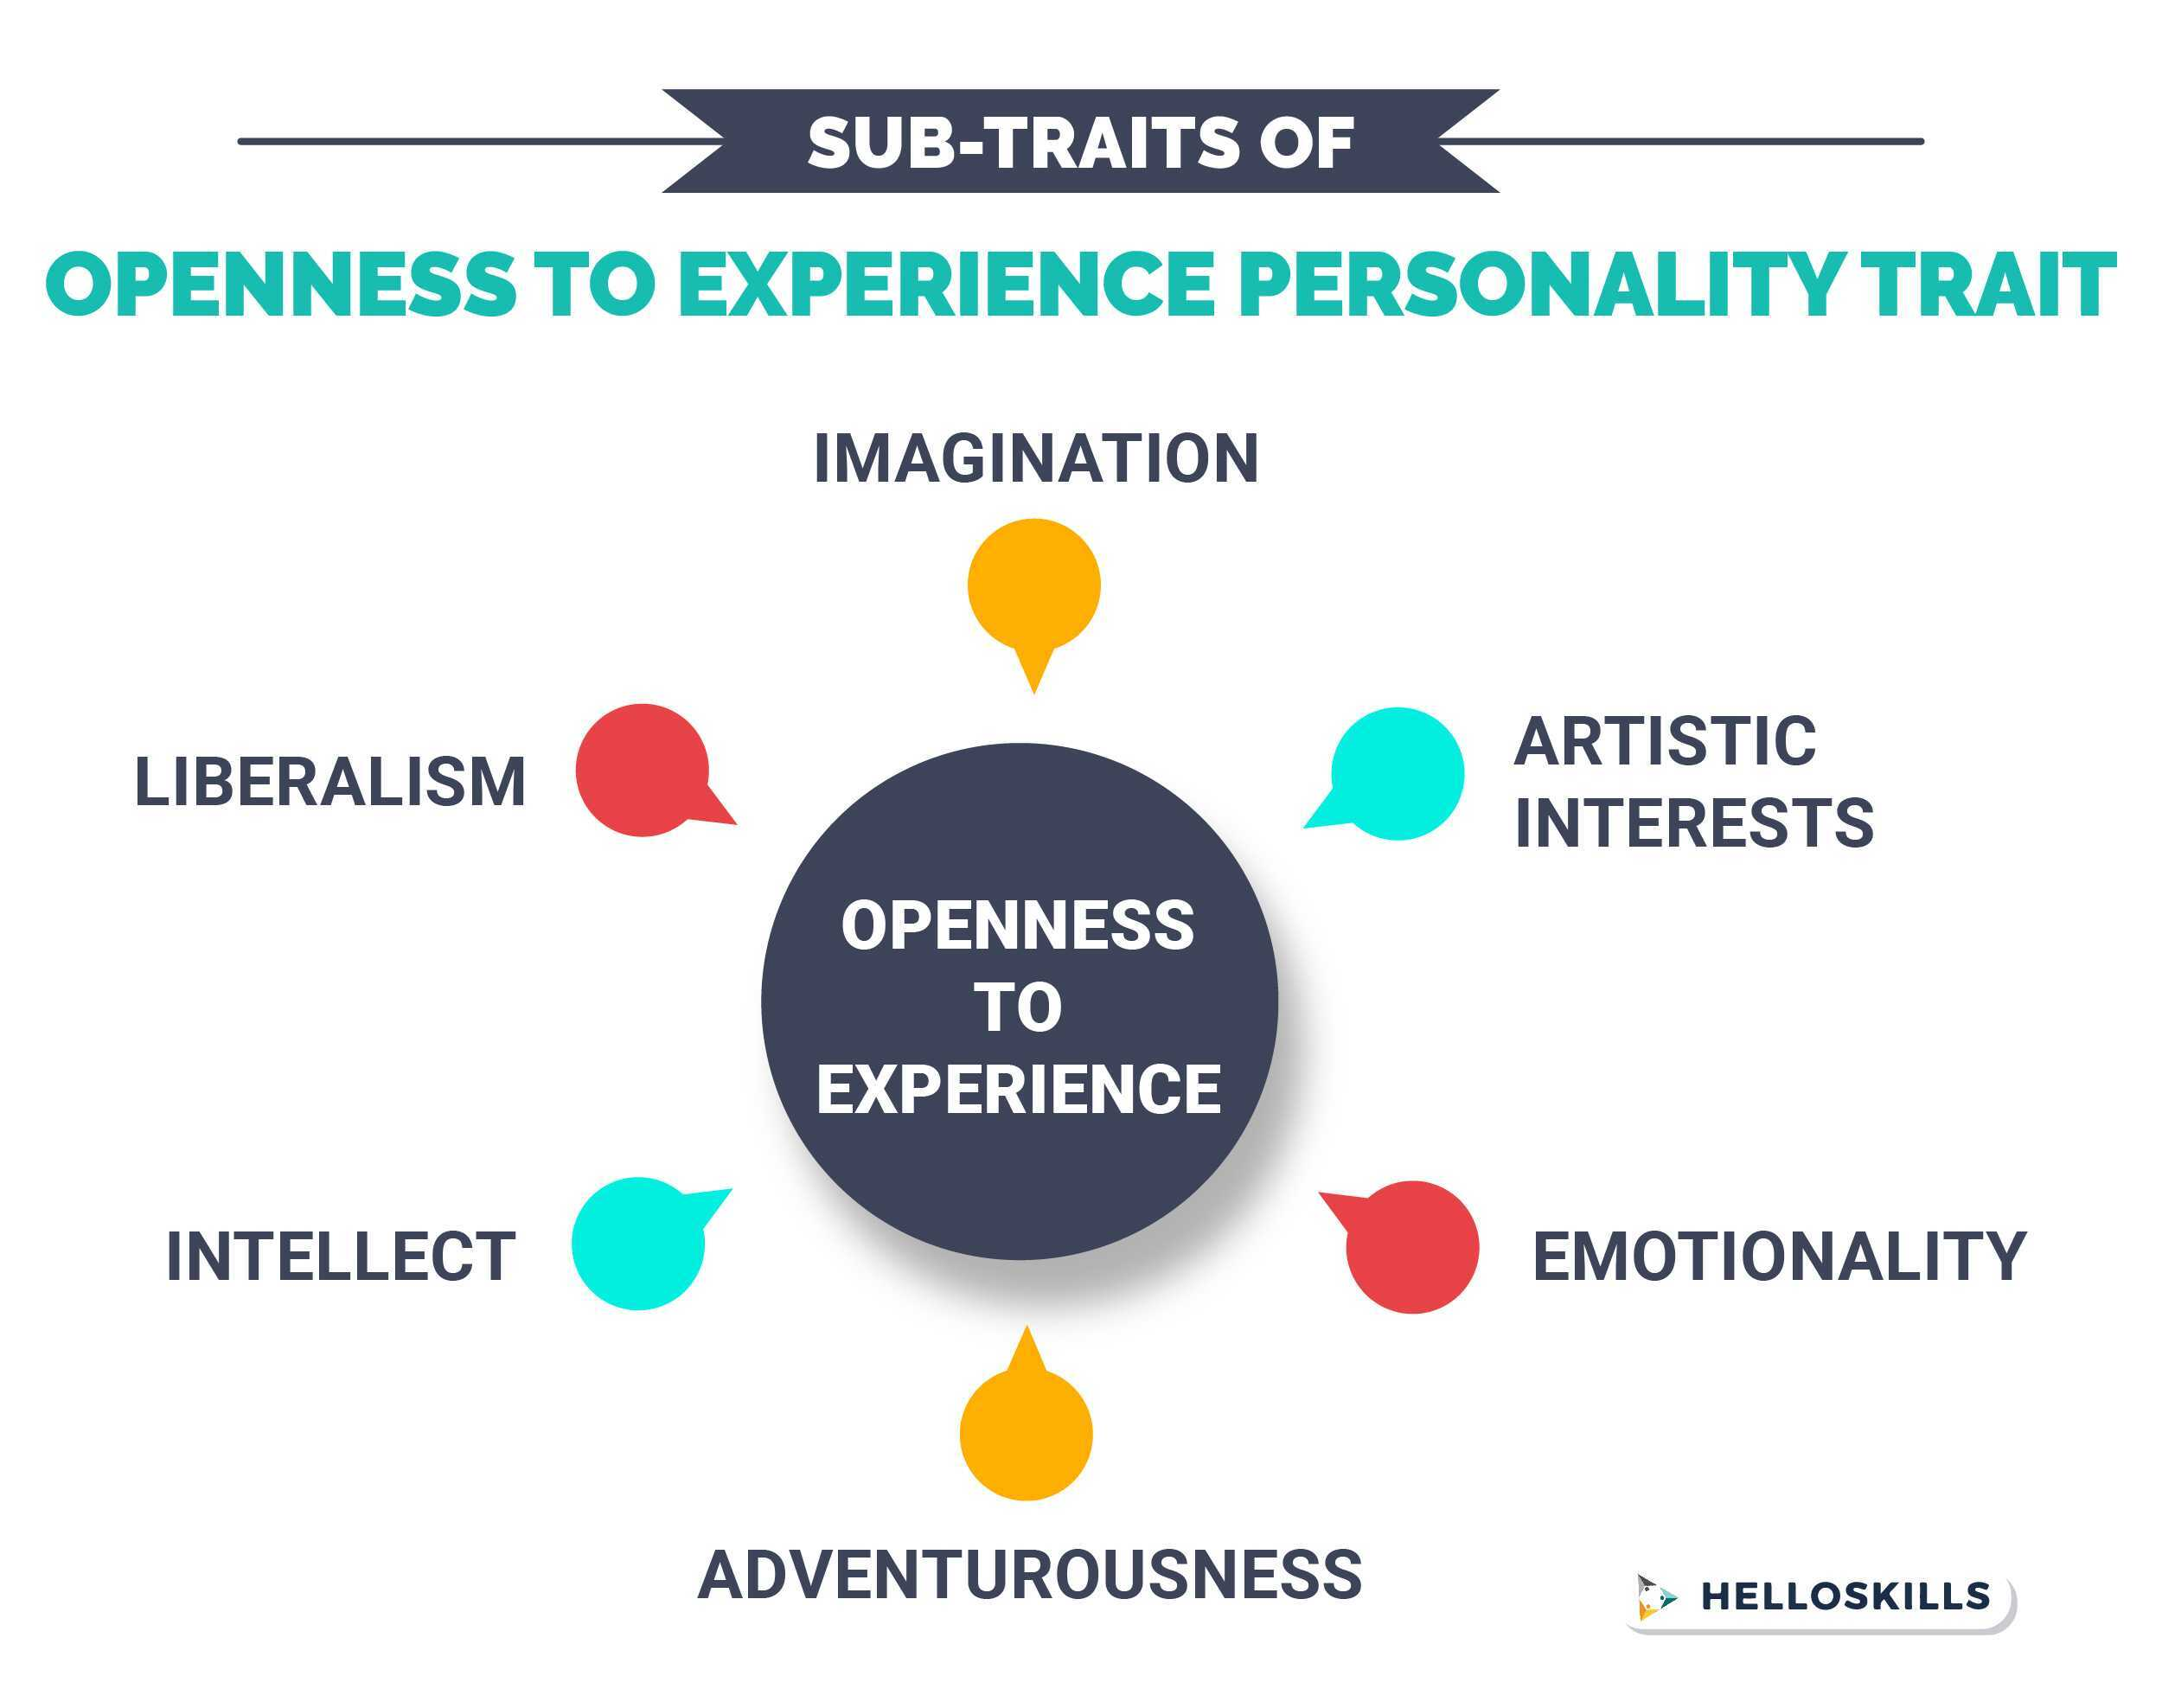 Openness to Experience Subtraits